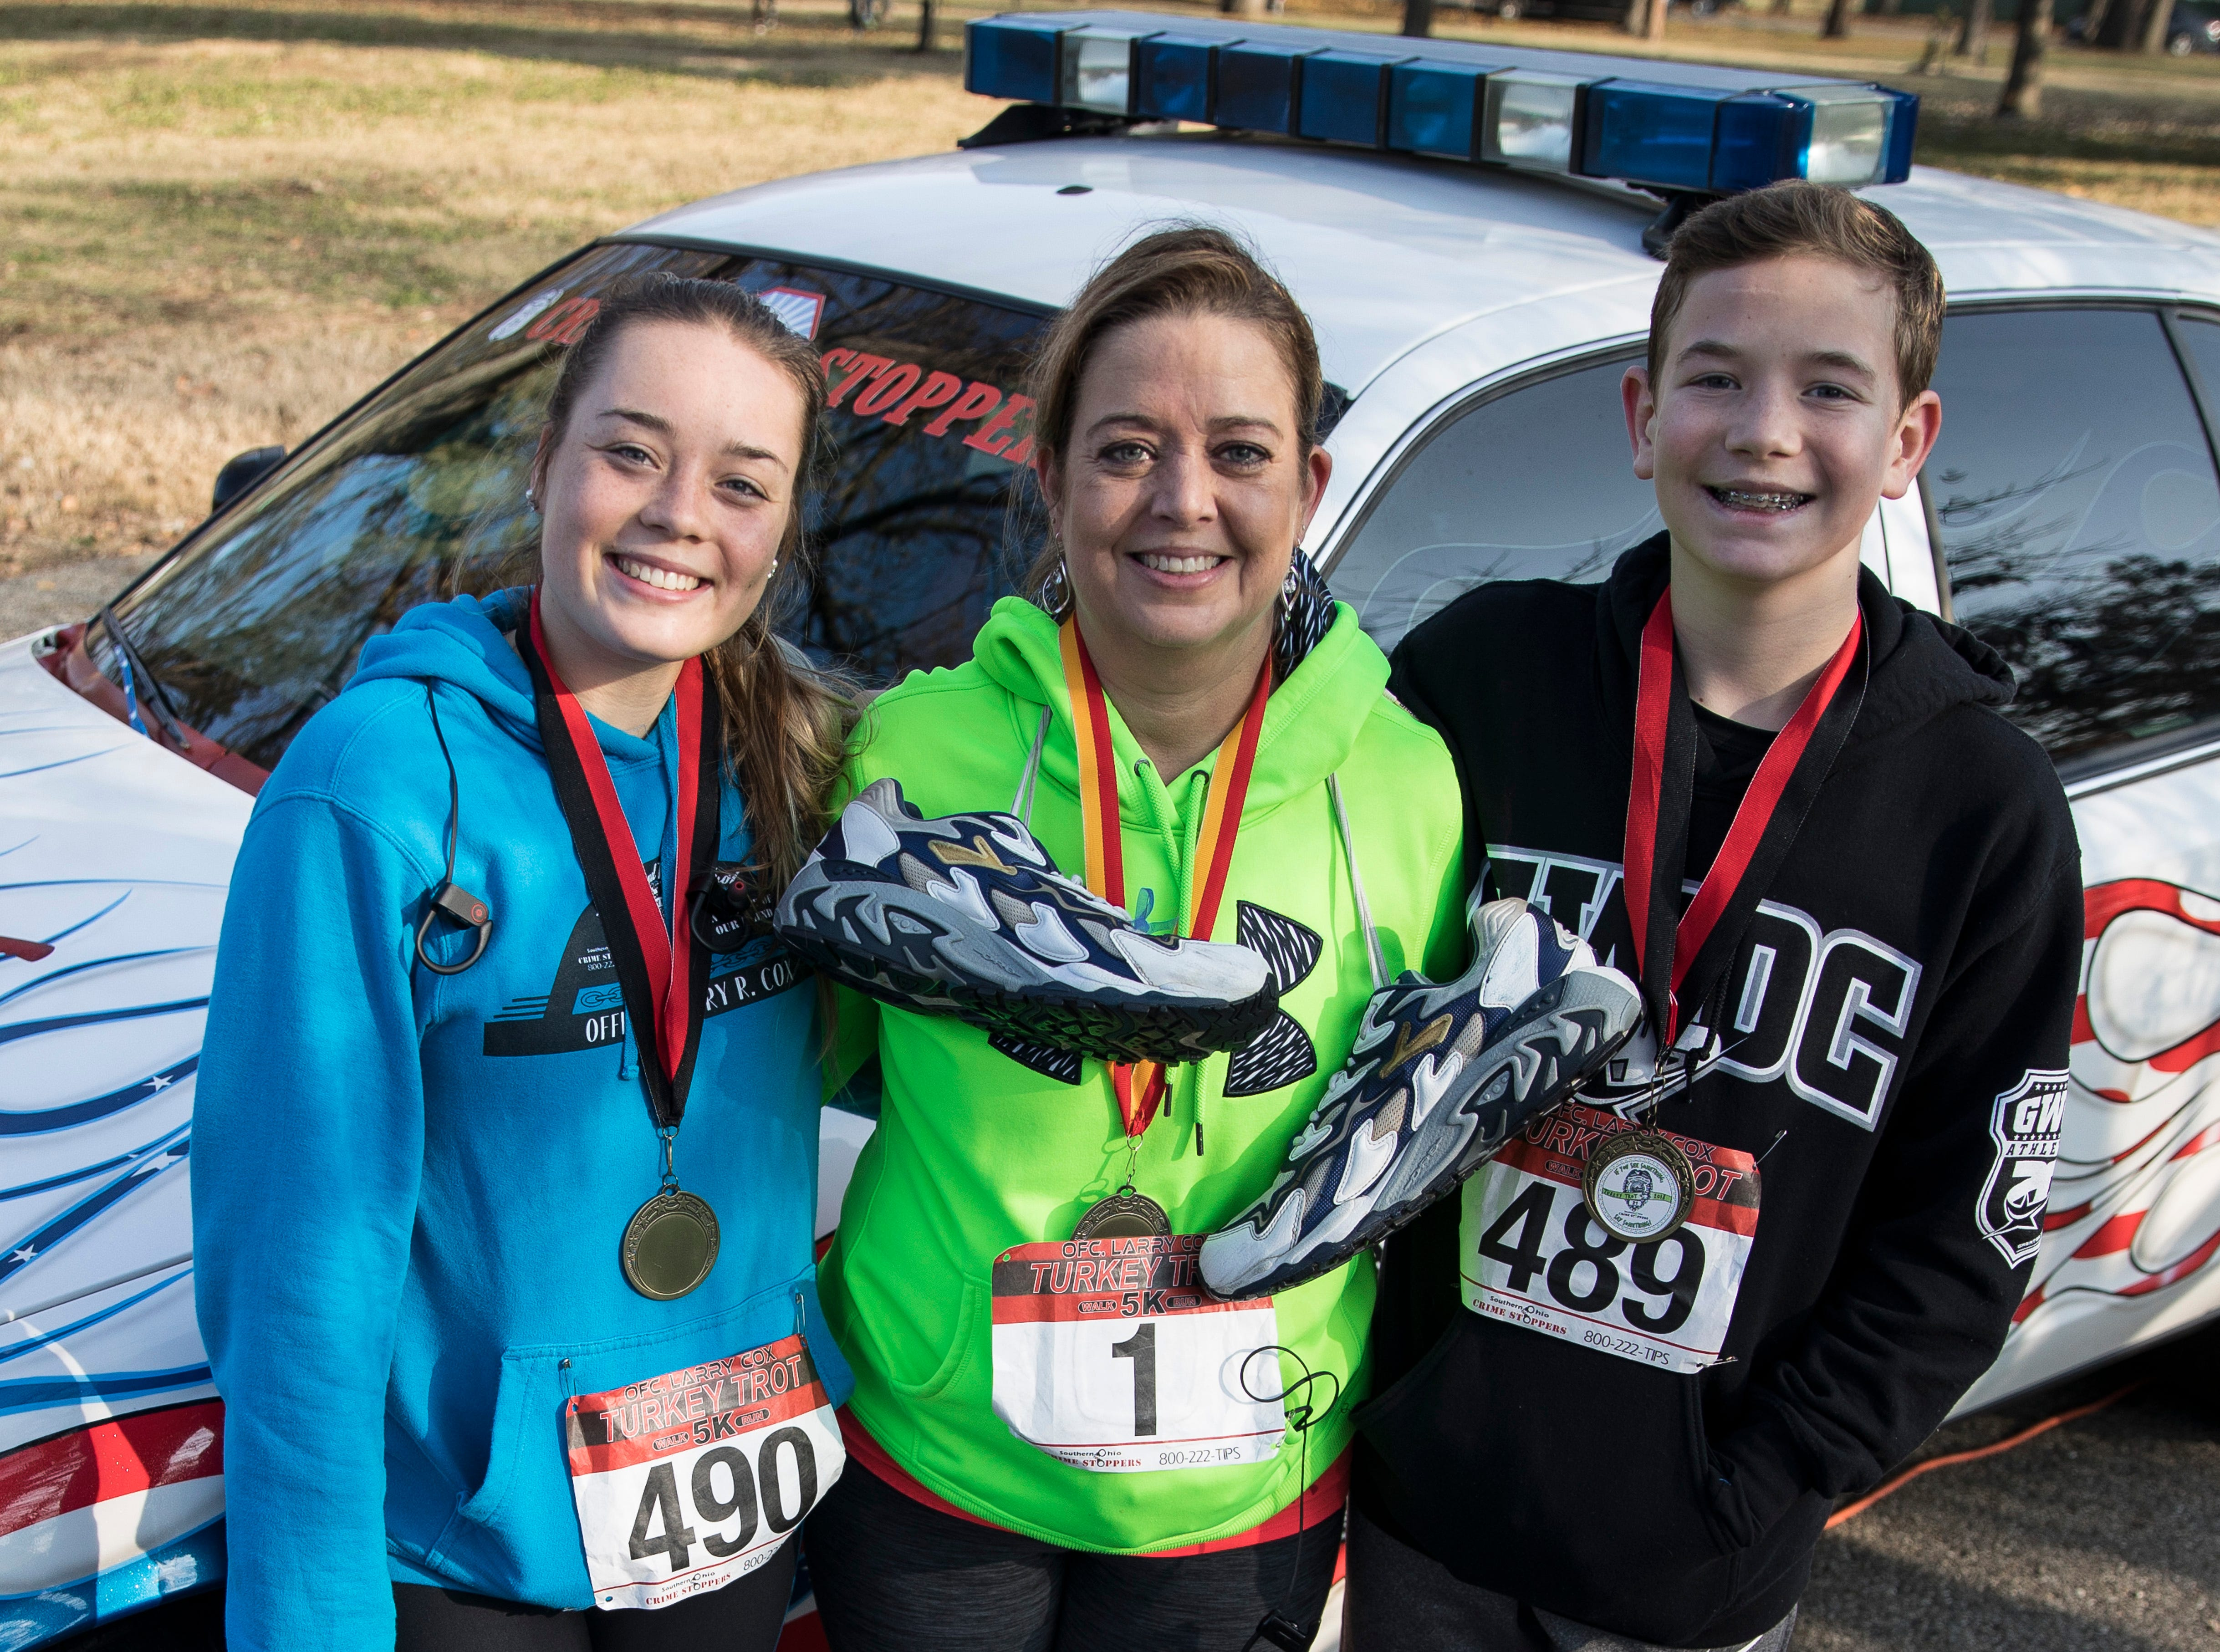 "Larry Cox's first cousin, Kelley Tamplin, center, stands with her son, Logan, and daughter, Madison, in front of the restored DARE vehicle that use to belong to former Chillicothe DARE officer Larry Cox. Each year, one person is given the honor to carry Cox's shoes as they participate in the annual Turkey Trot. The event was established as a tribute to Cox, who was a well-known runner and athlete in the community, after he was shot and killed while off duty in April 2005 while pursuing a suspect on foot. ""I started running after Larry did because I wanted to lose weight,"" said Tamplin. ""I have been waiting a long time for this and I am the only family member to carry his shoes so far."" The event raises money for Southern Ohio Crime Stoppers. For more images, go to chillicothegazette.com."